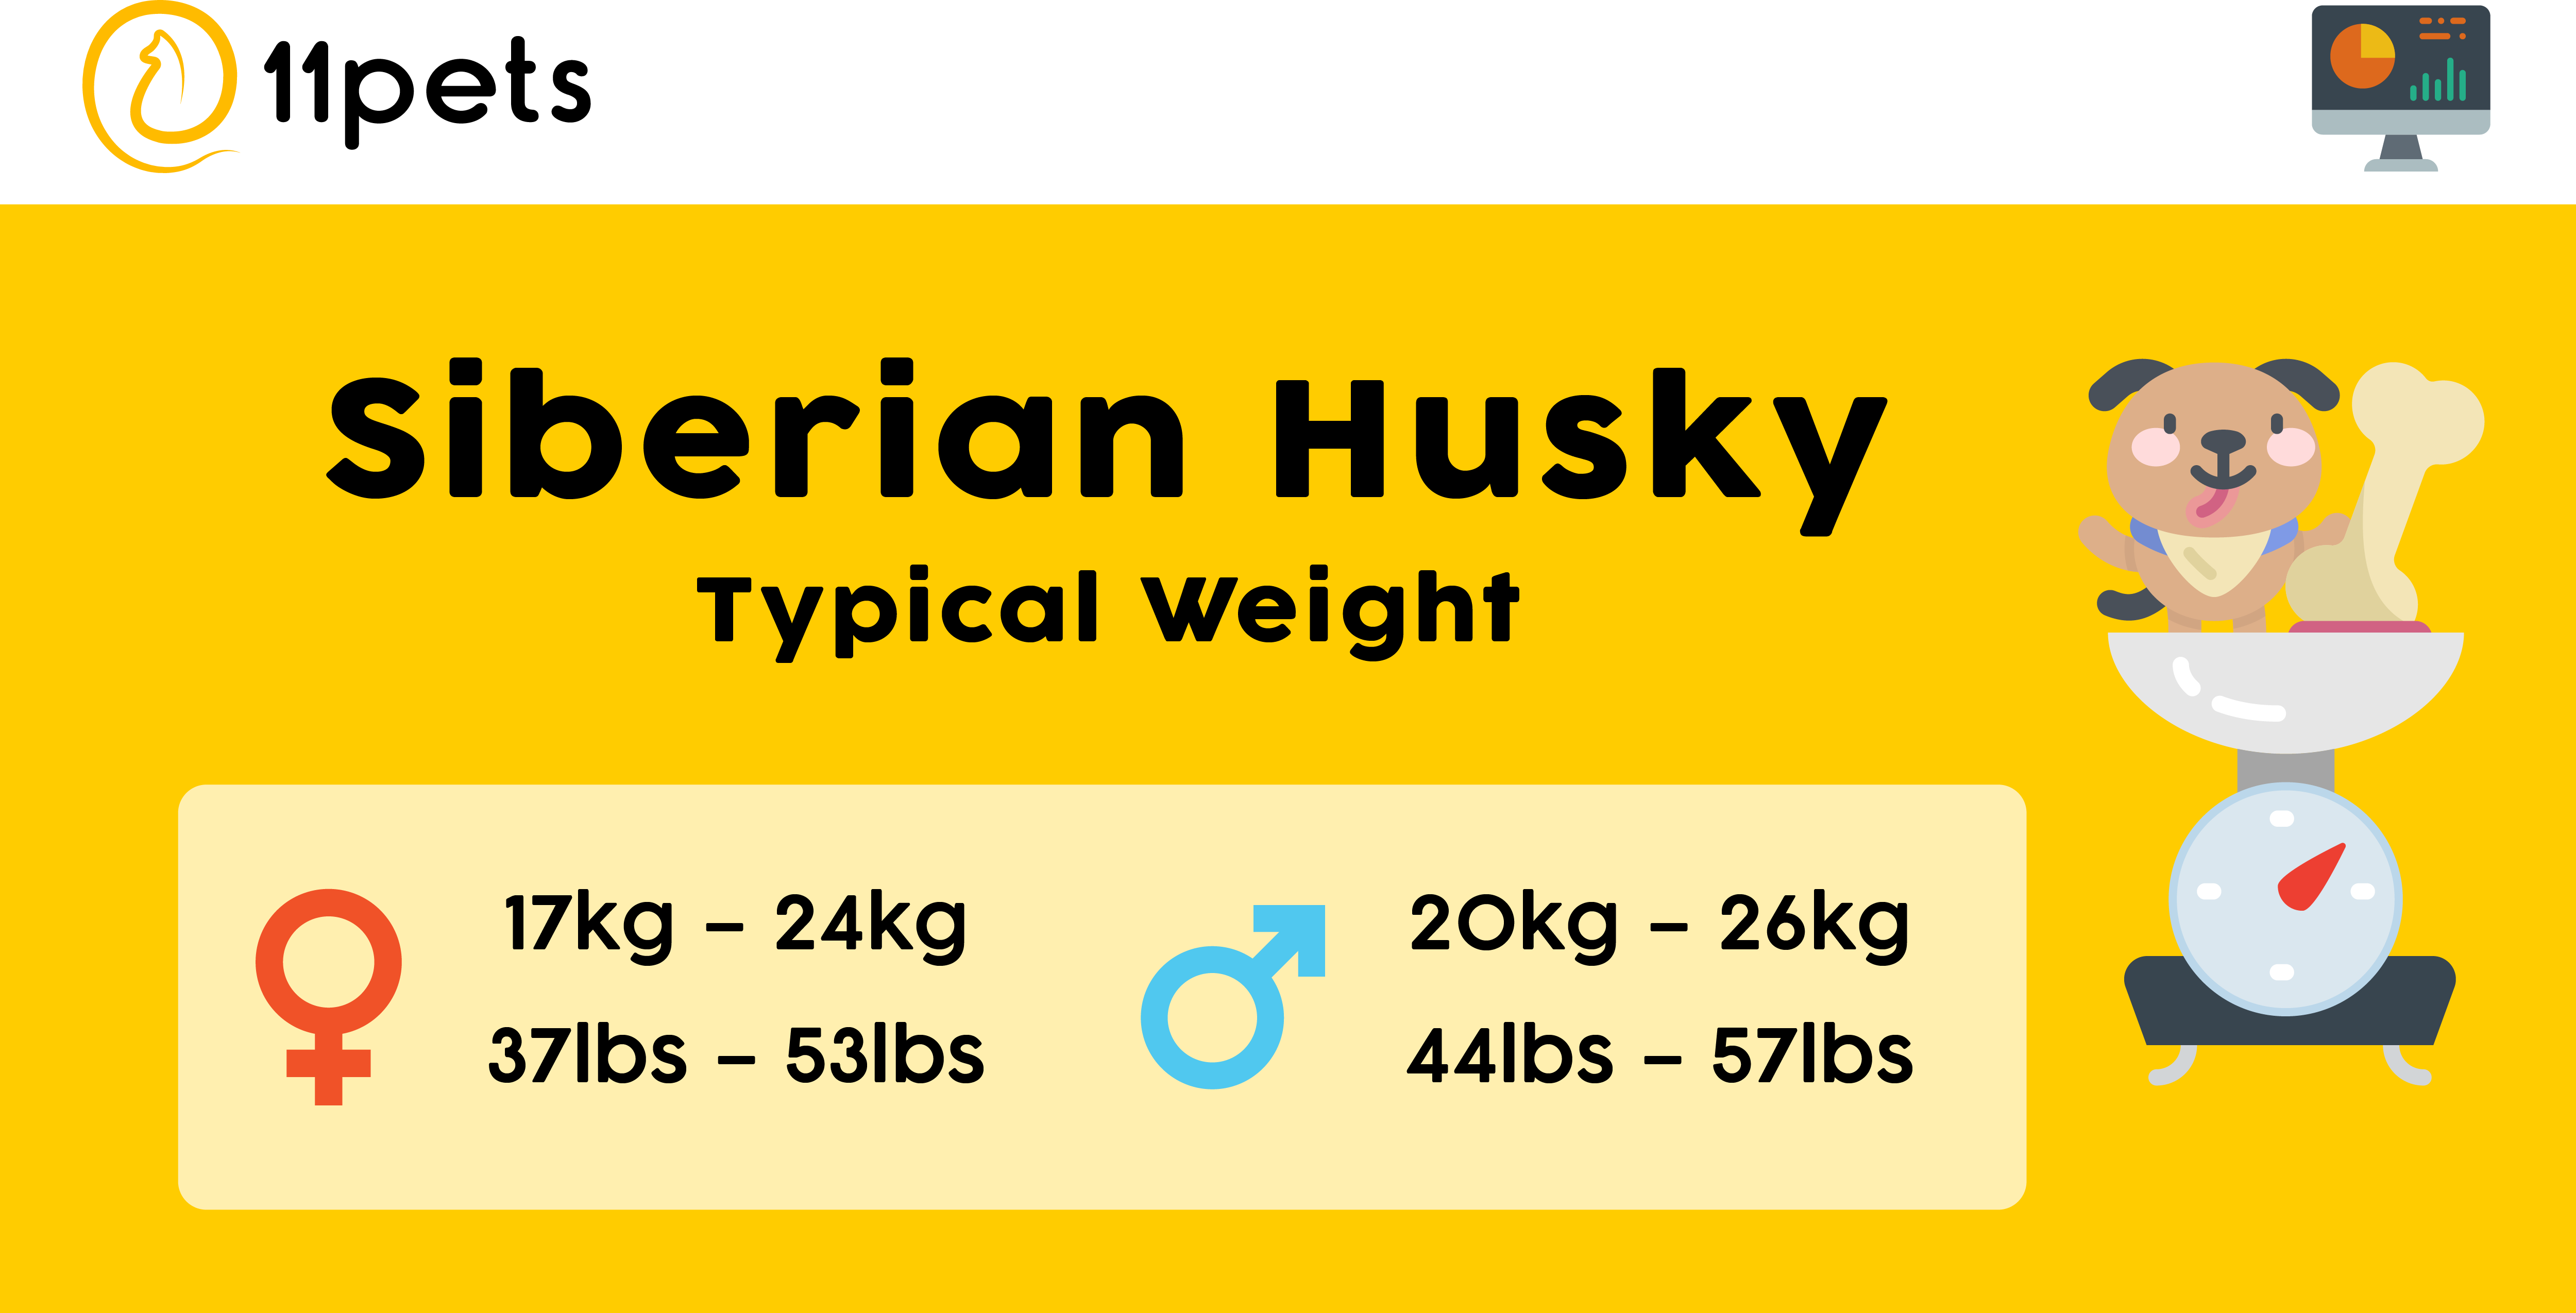 Typical weight for Siberian Husky dogs